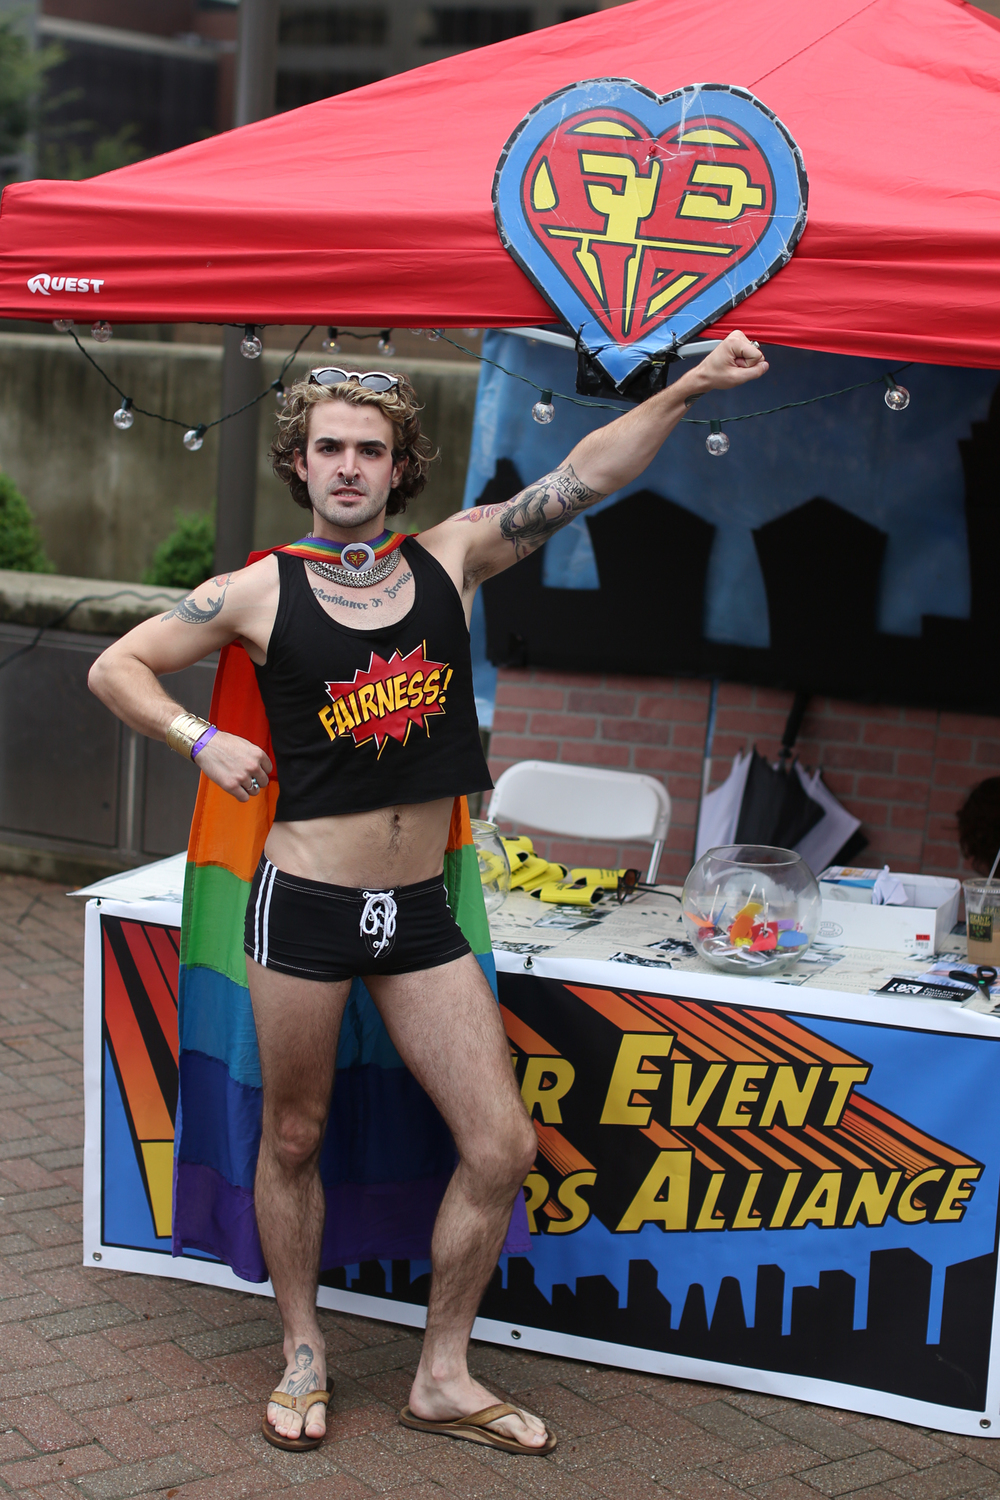 PRIDE W-FEVA 2015 EDITED CRYSTAL LUDWICK PHOTO (5 of 83).jpg